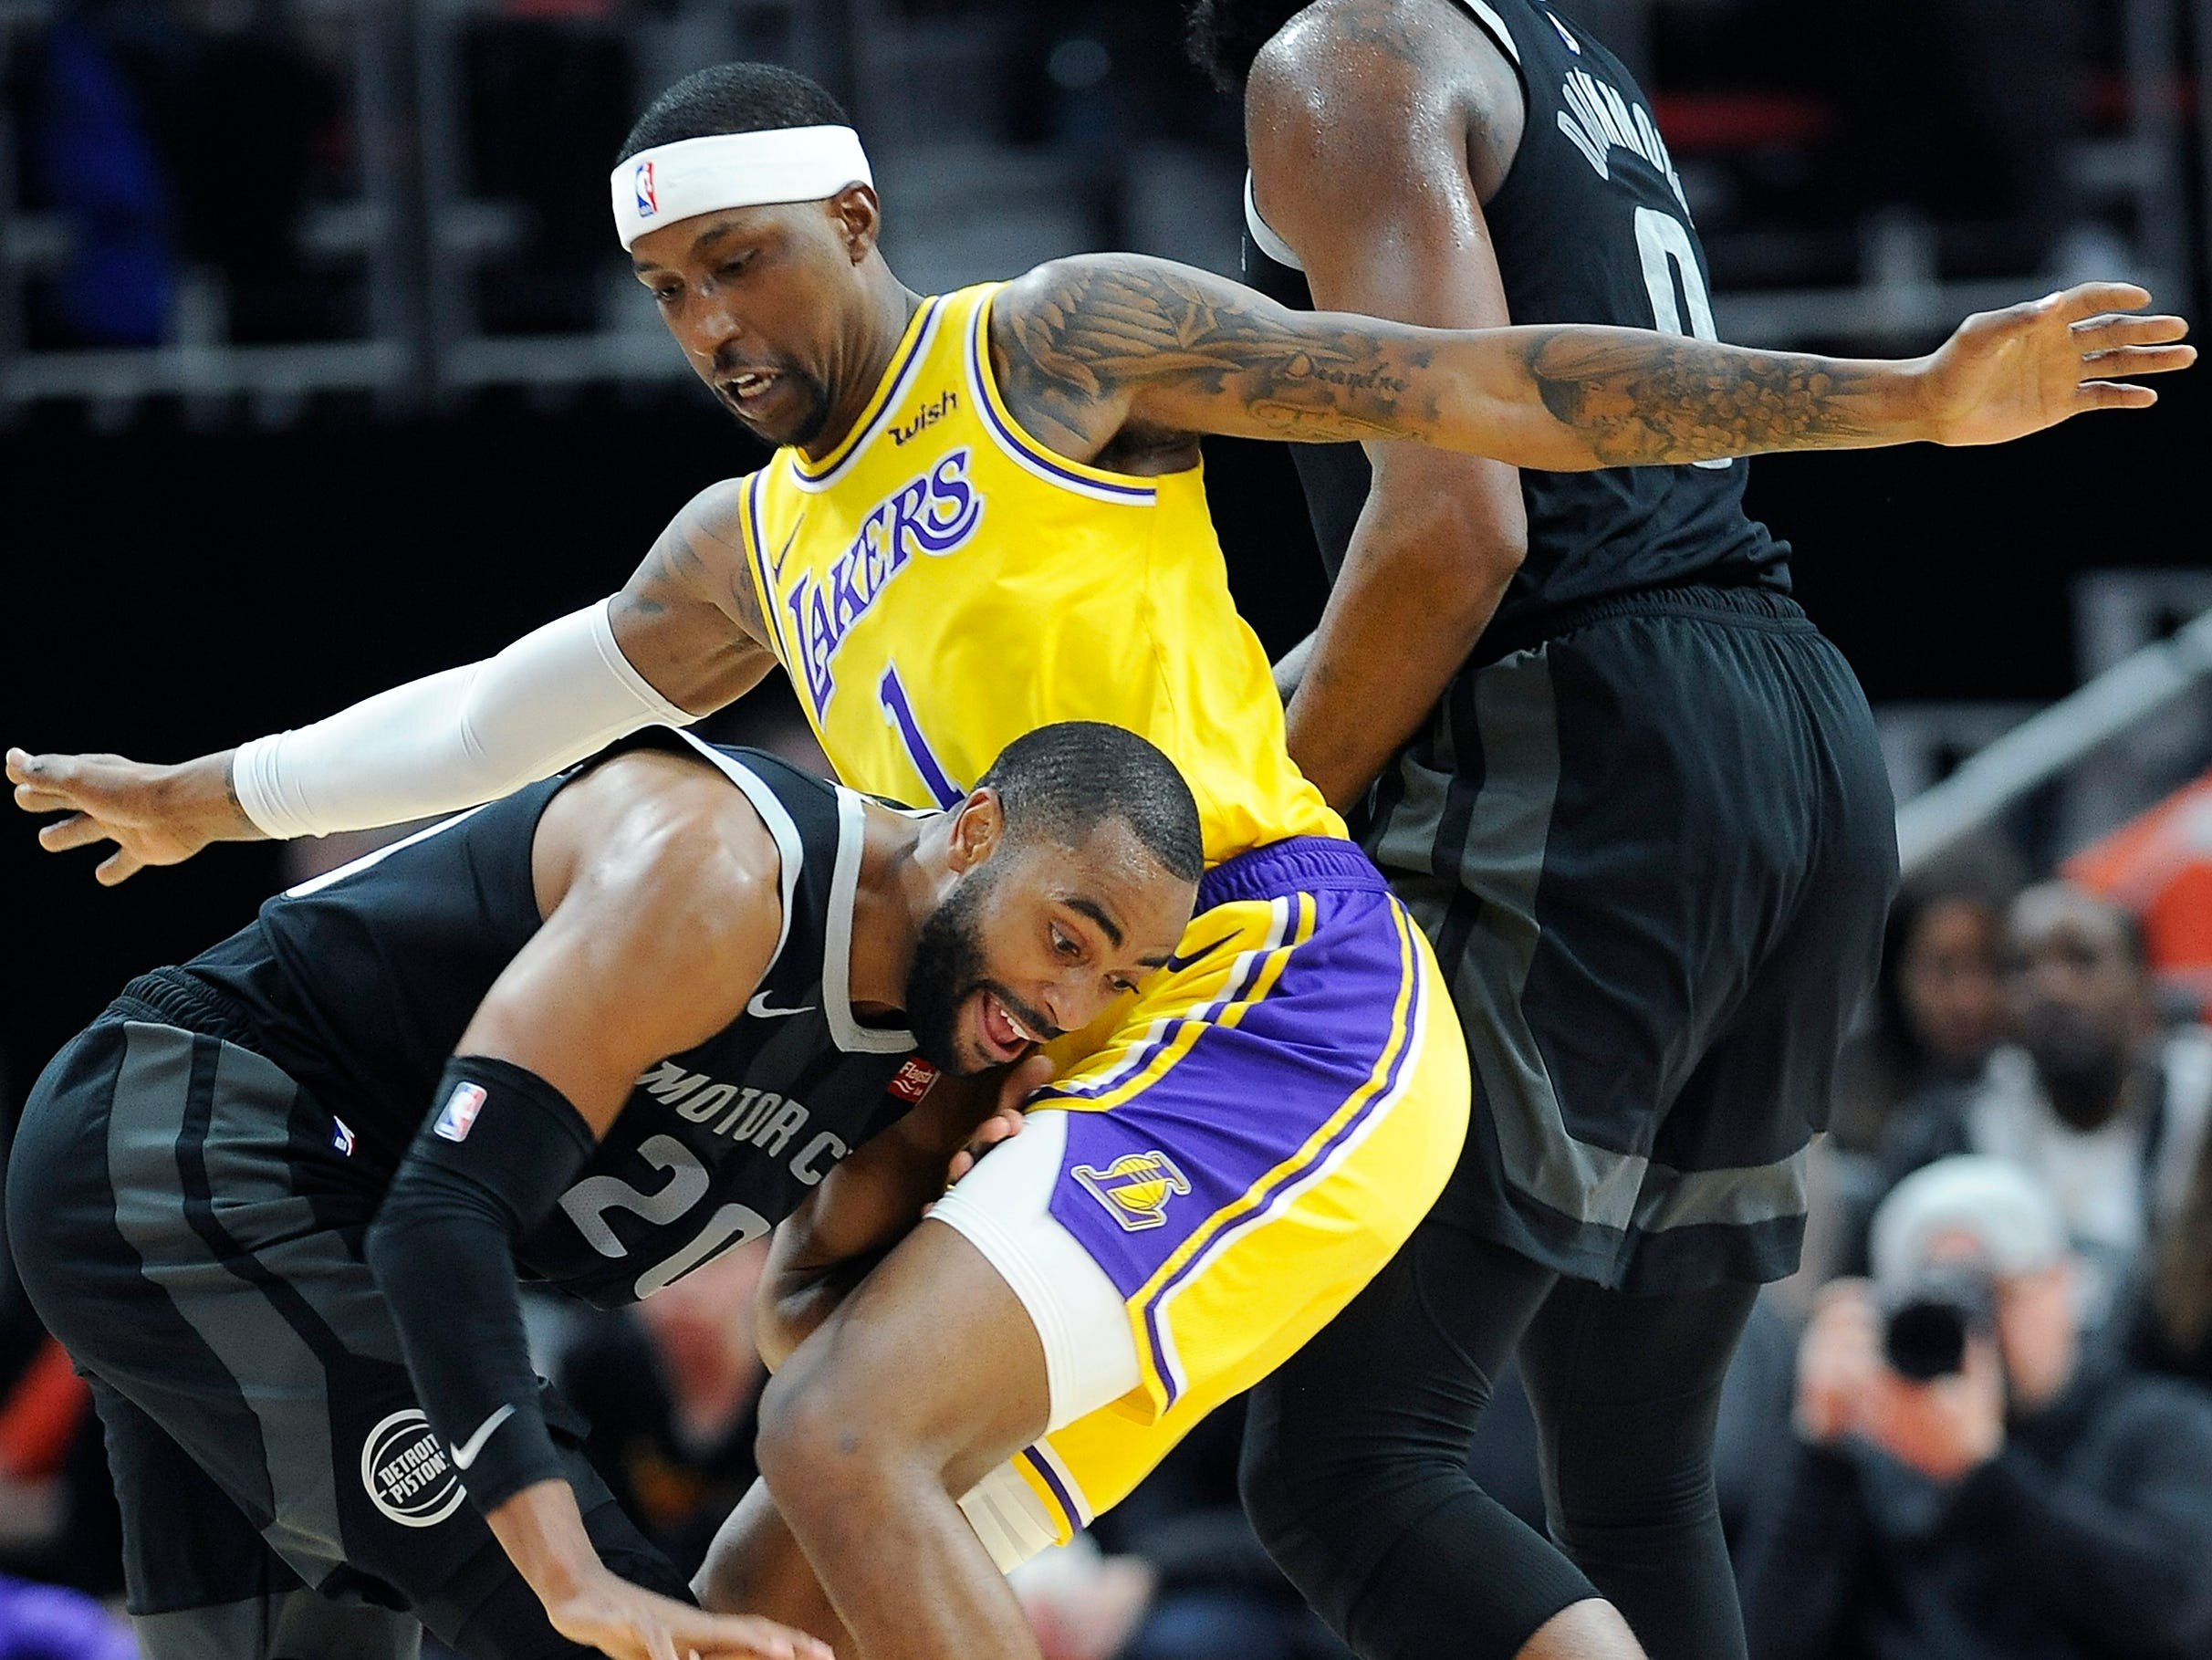 Pistons' Wayne Ellington drives around Lakers' Kentavious Caldwell-Pope in the third quarter. The Pistons defeated the Lakers 111-97, Friday, March 15, 2019 at Little Caesars Arena in Detroit, Michigan.